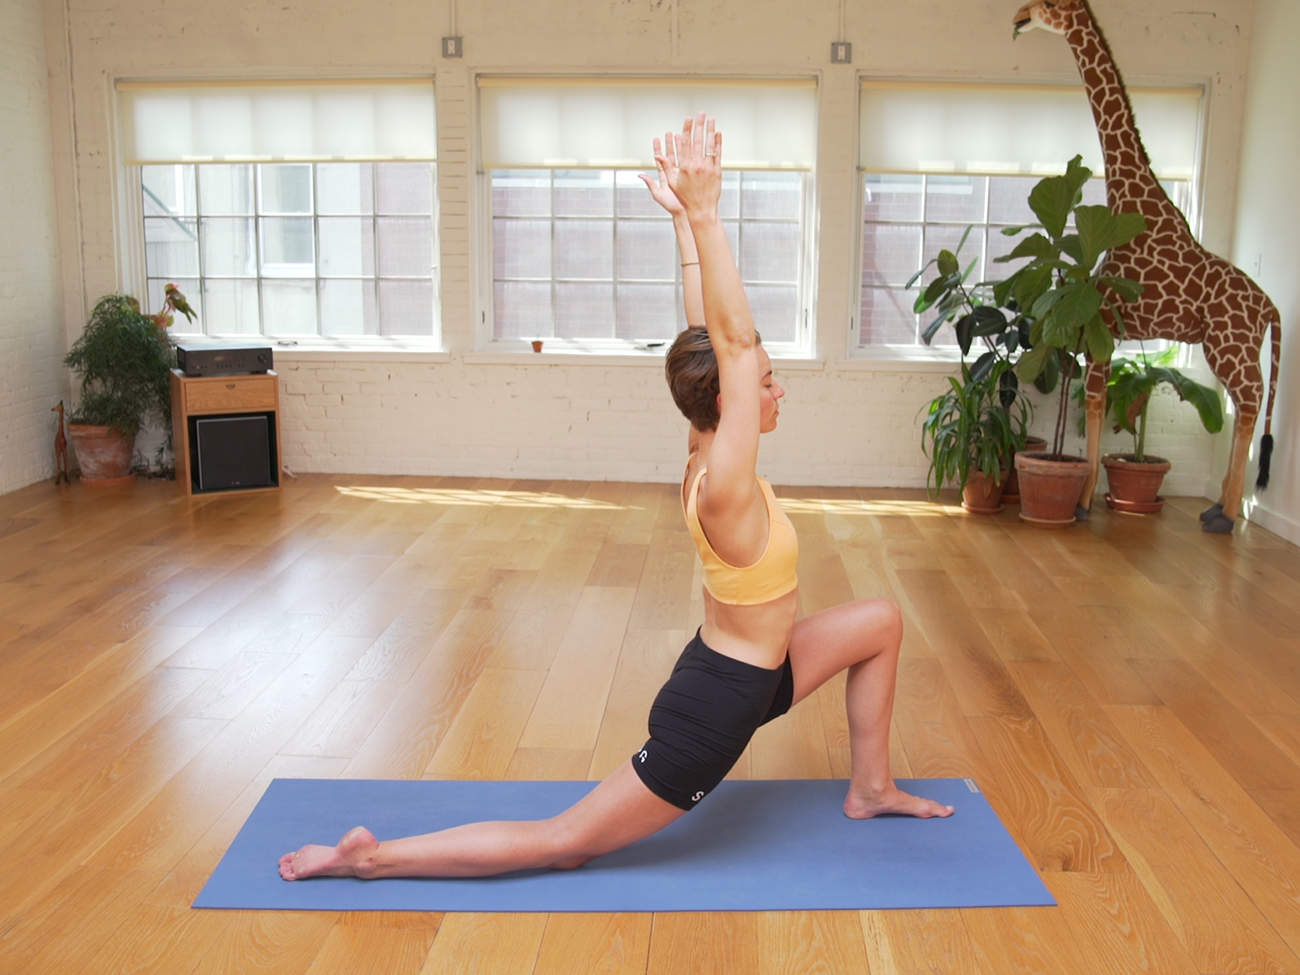 sky-ting-yogas-how-to-fix-yoga-poses-video